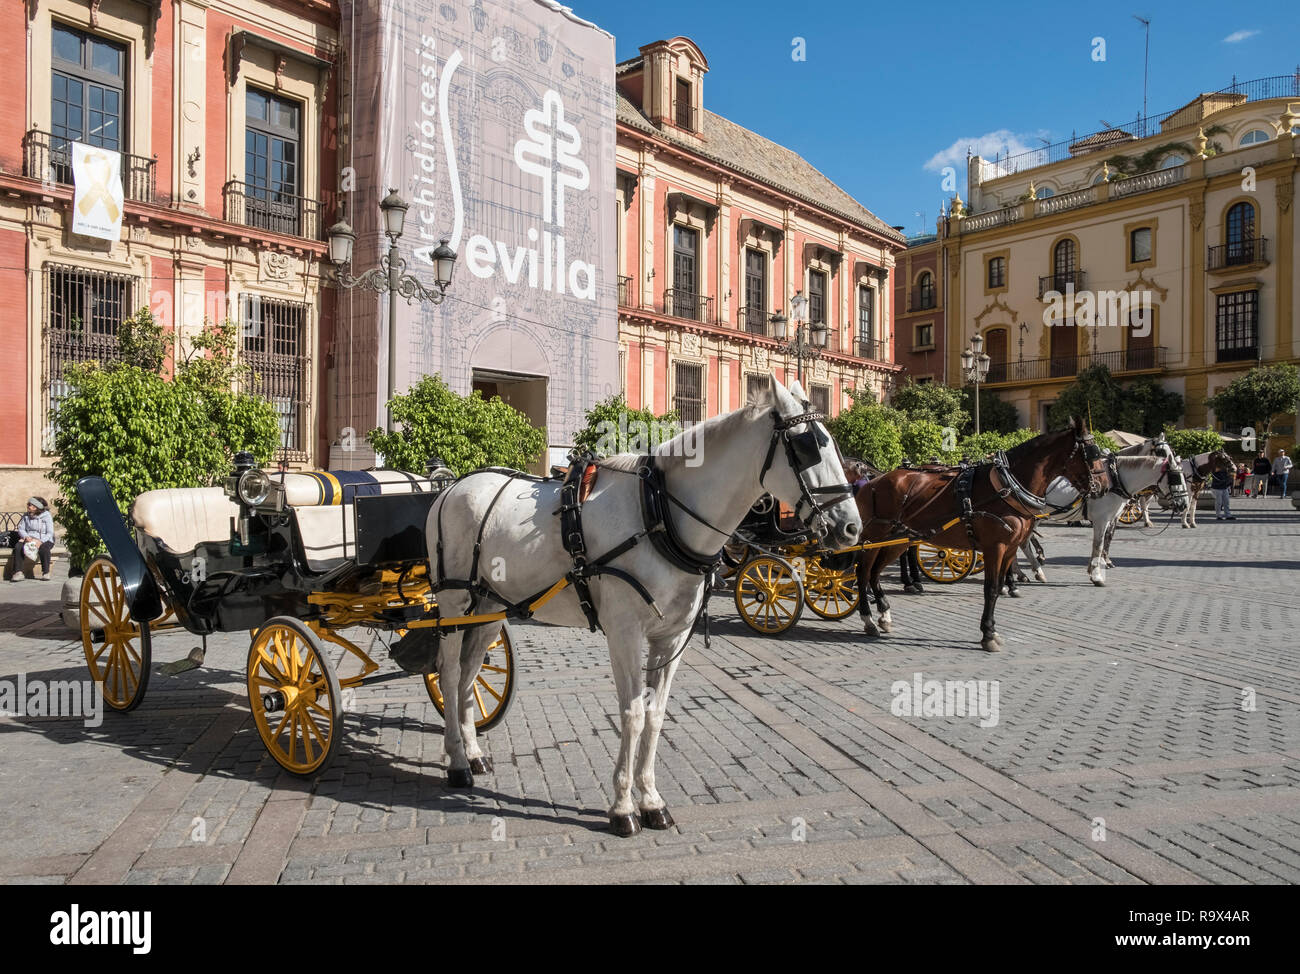 Popular tourist spot with horse drawn carriages in Plaza Virgen de los Reyes, Seville, Spain Stock Photo